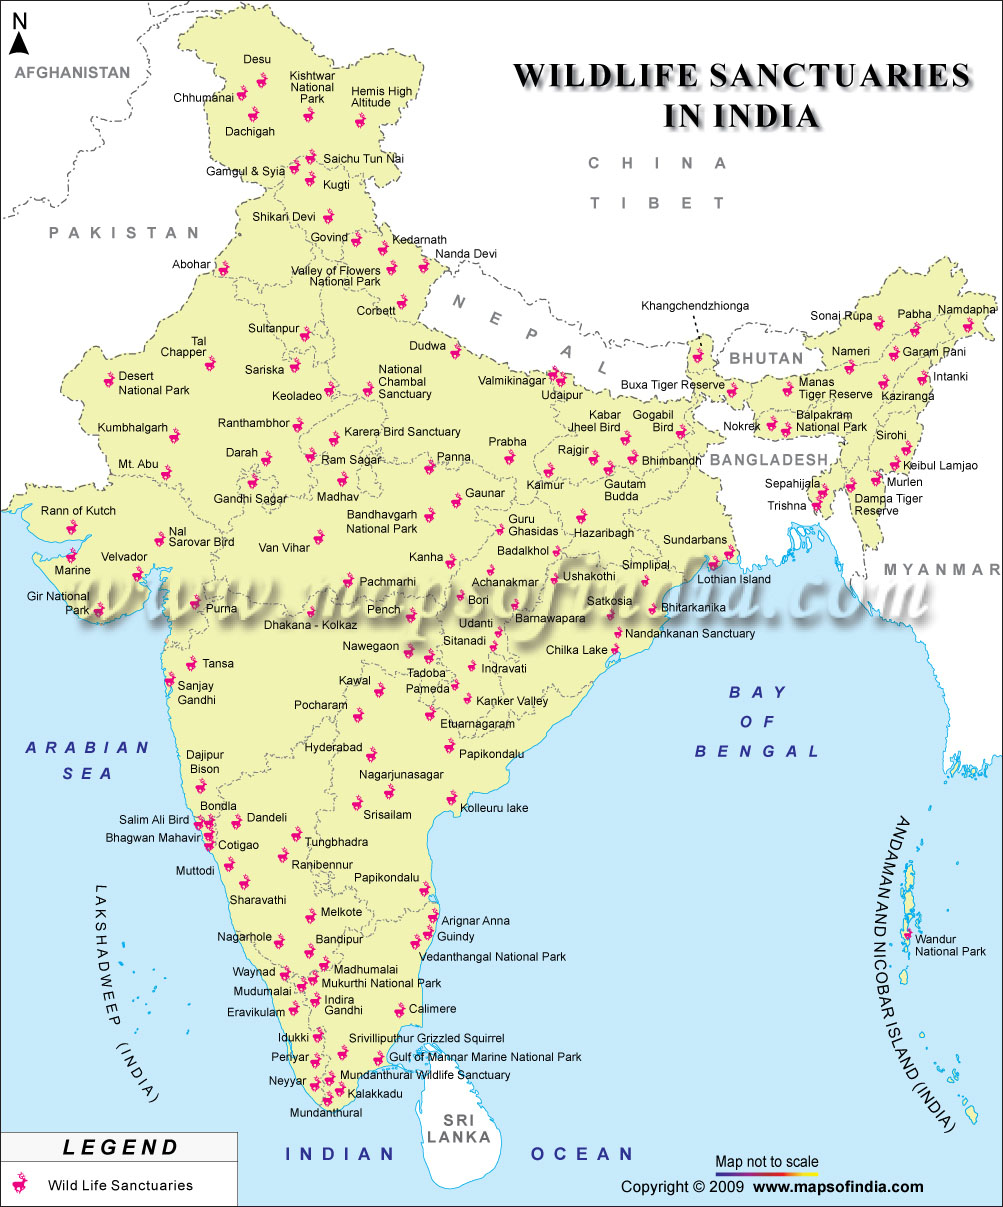 Map of Wildlife Sanctuaries in India